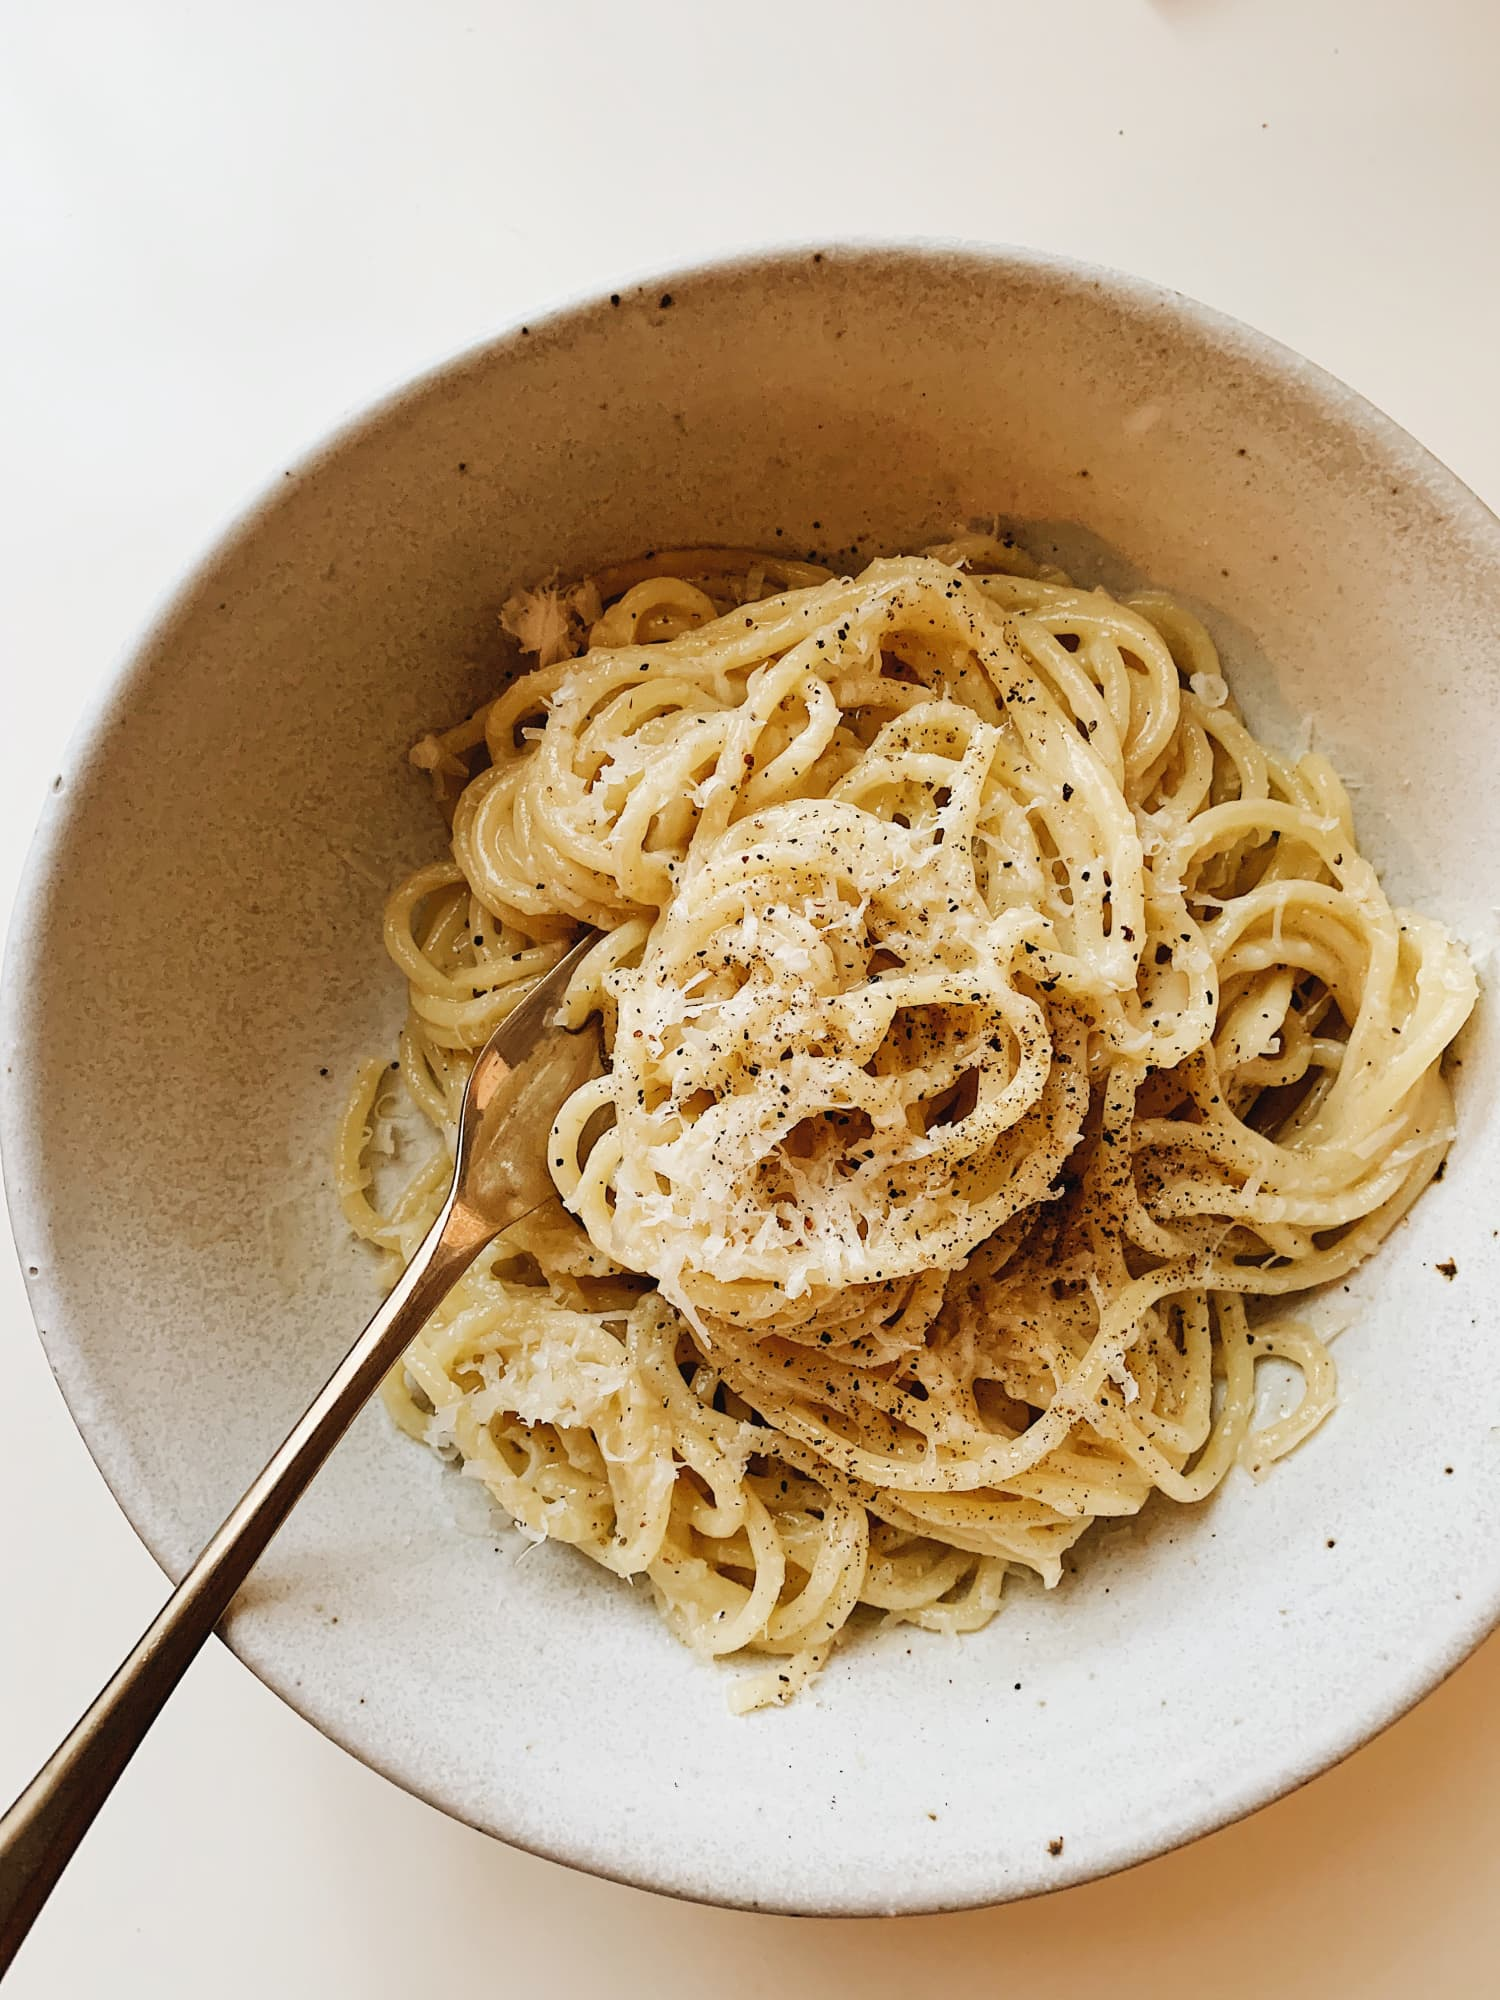 Samin Nosrat's Pasta Cacio e Pepe Is So Much Better than Mac and Cheese